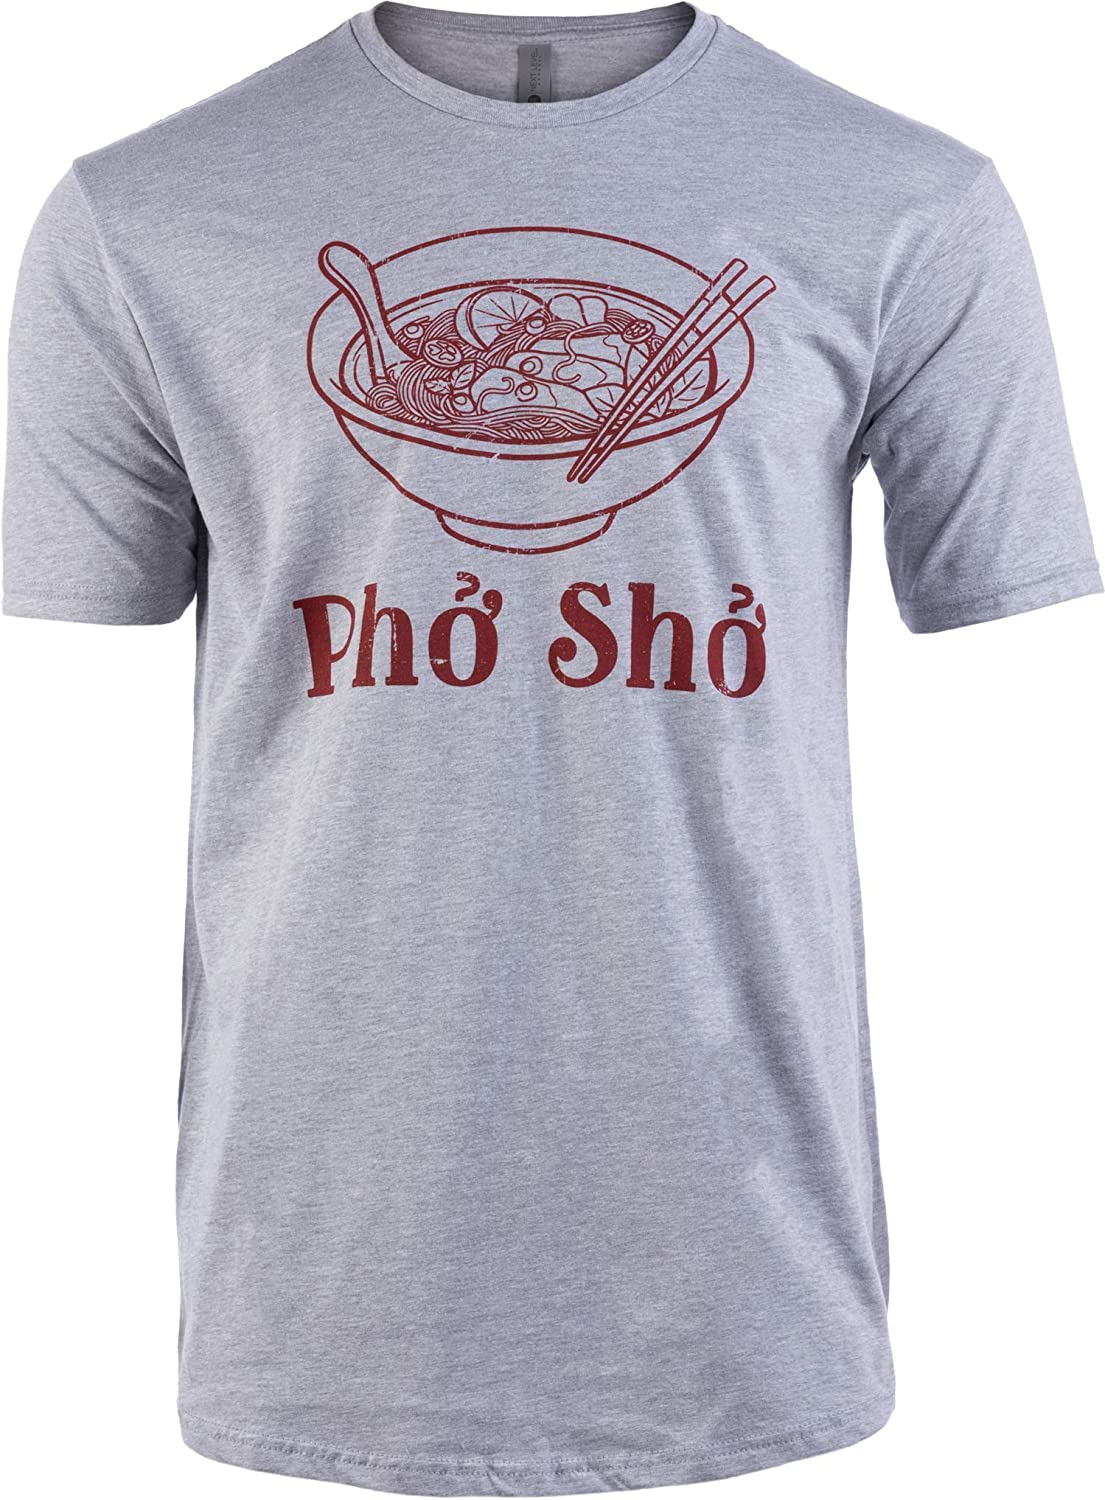 Tall Tee: Pho Sho | Funny Vietnamese Cuisine Vietnam Foodie Chef Cook Food Humor T-Shirt